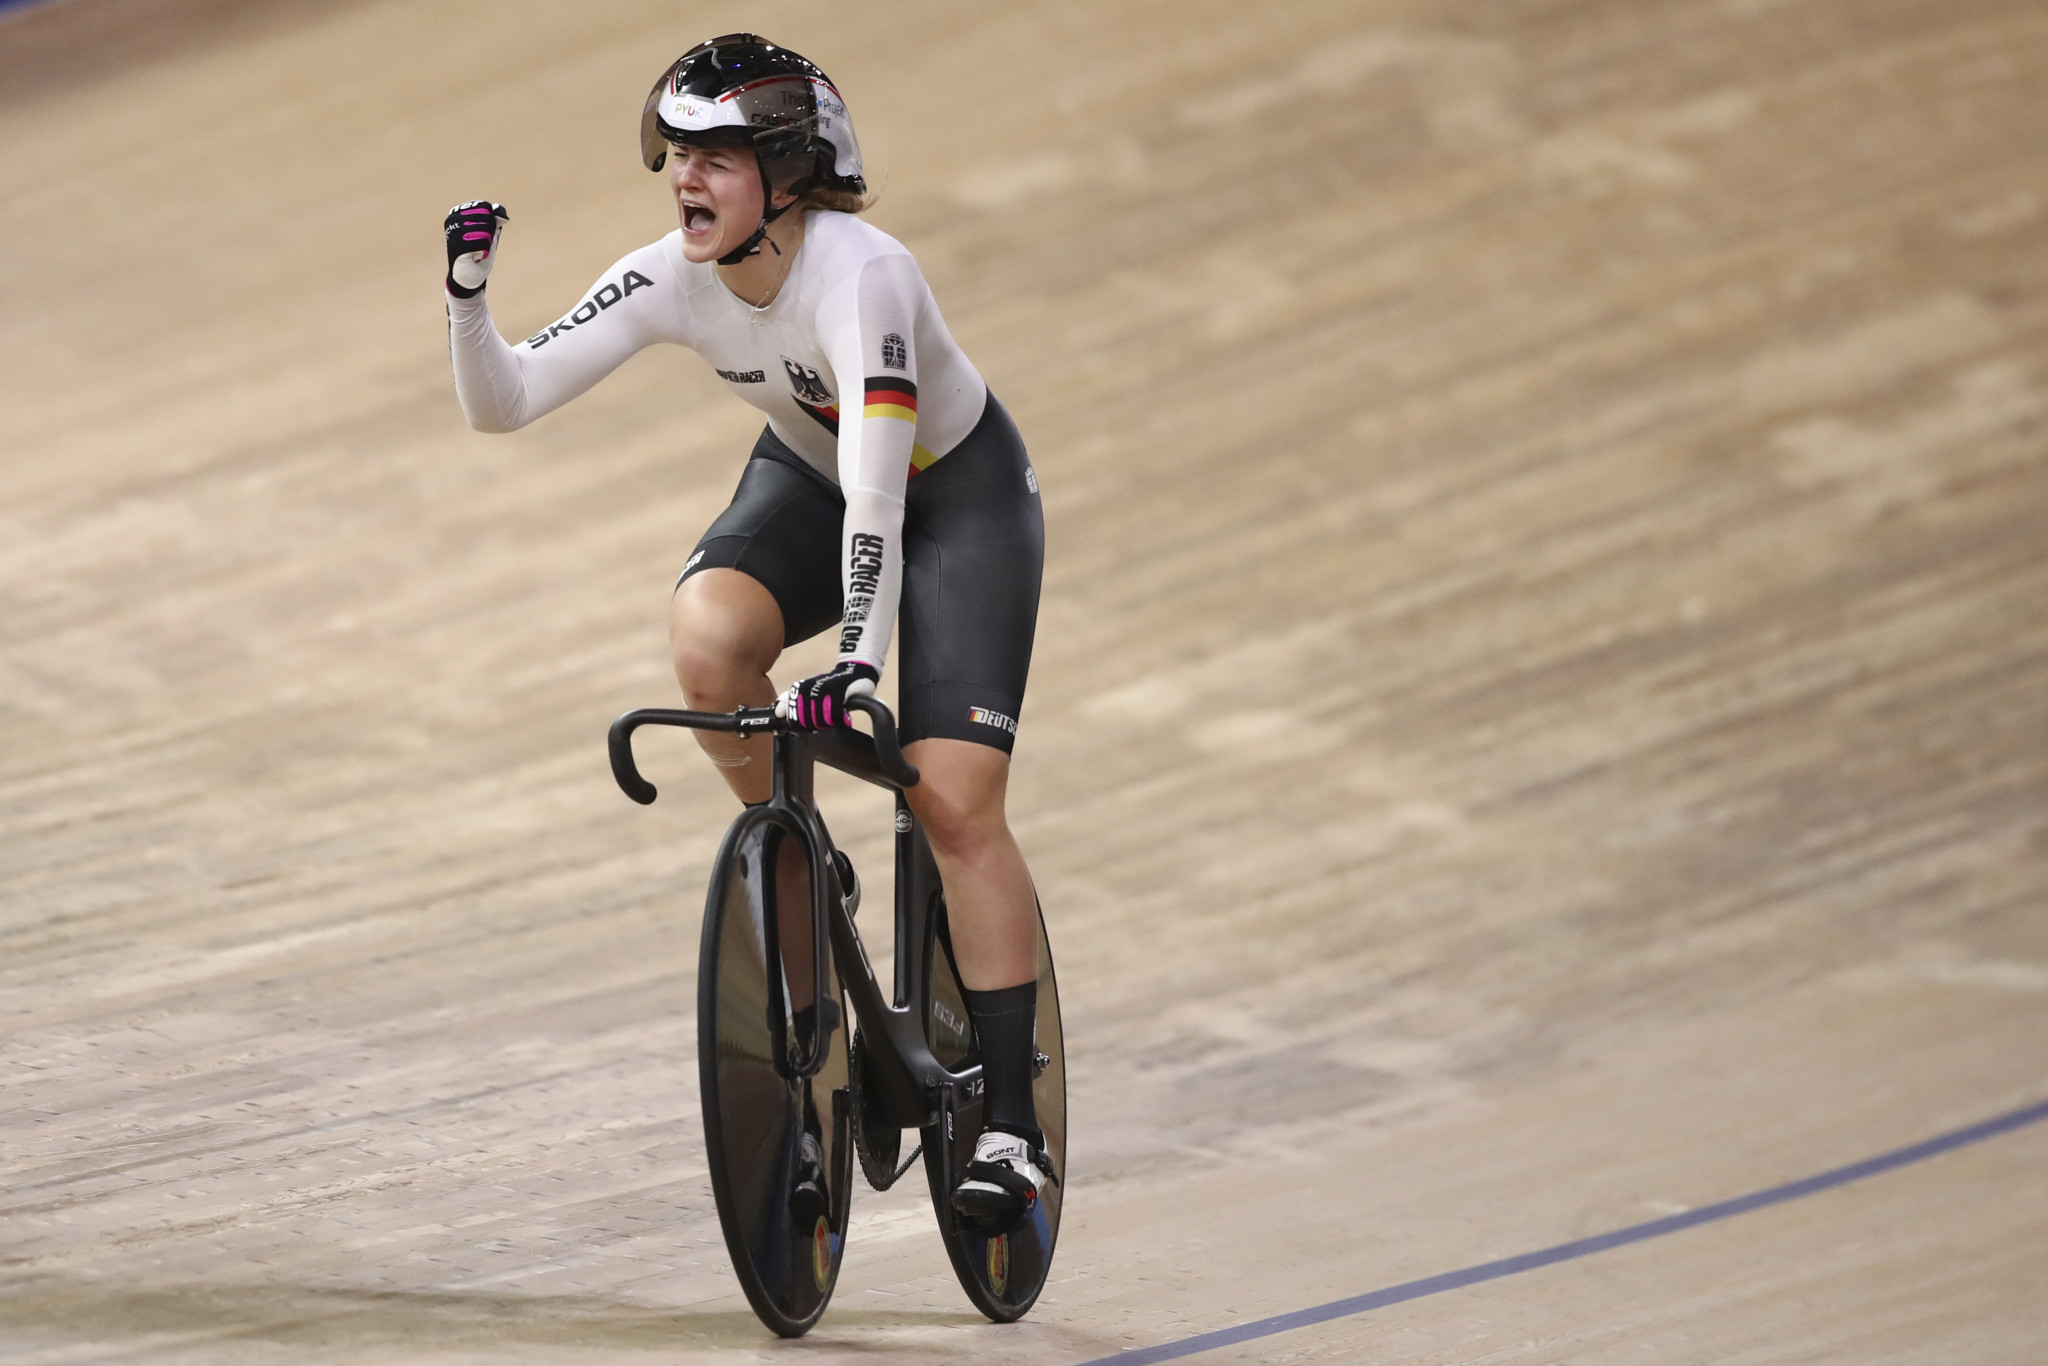 Germany tops medal table on final day of UCI Track Cycling World Championships